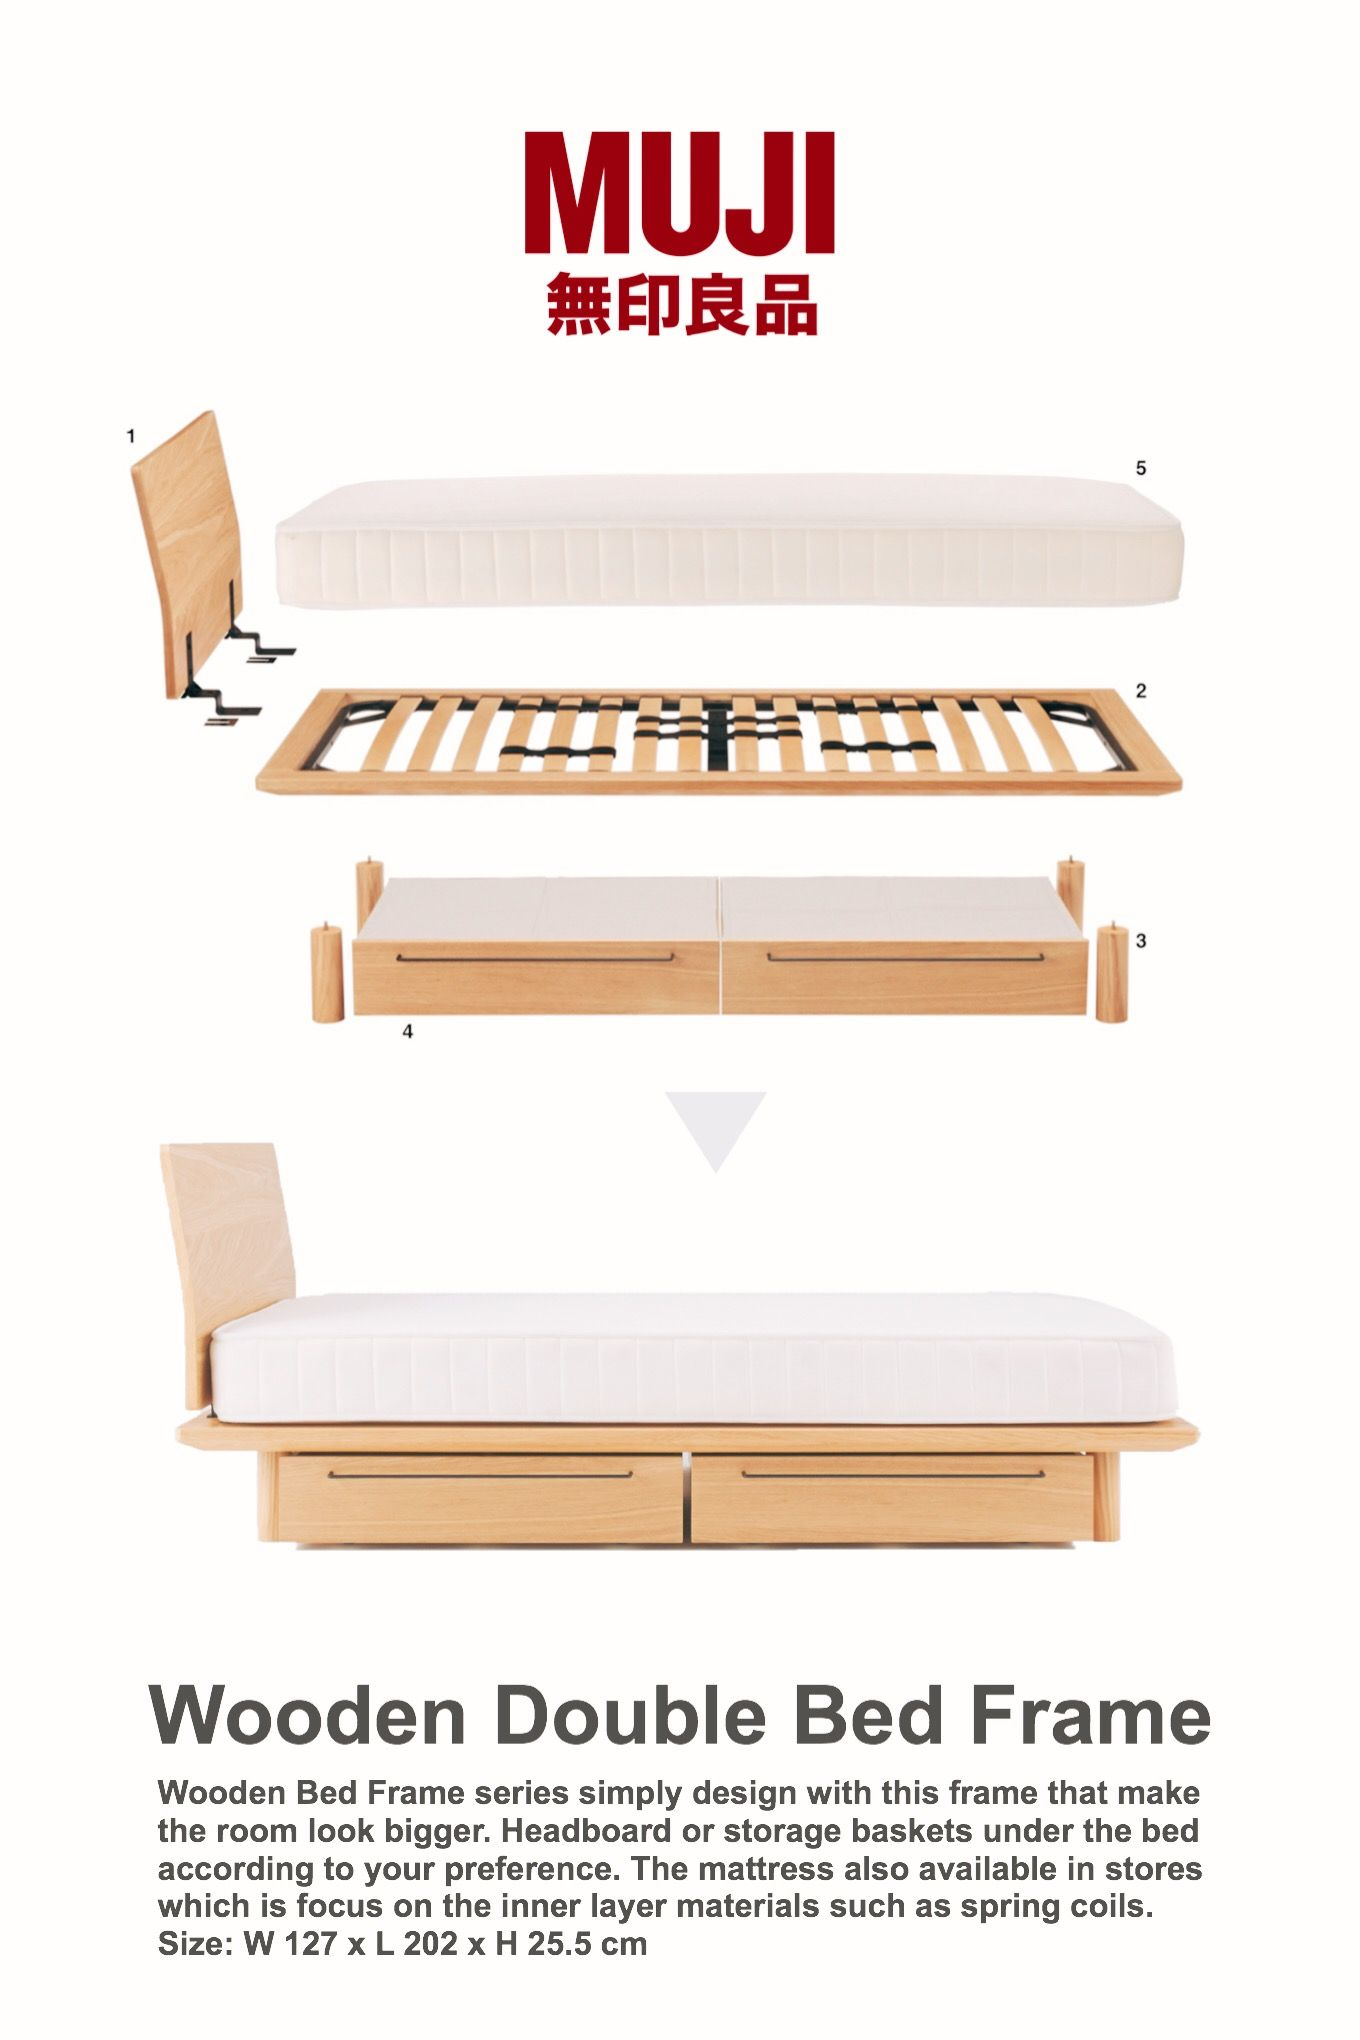 Muji Wooden Double Bed Frame | furniture | Pinterest | Wooden double ...